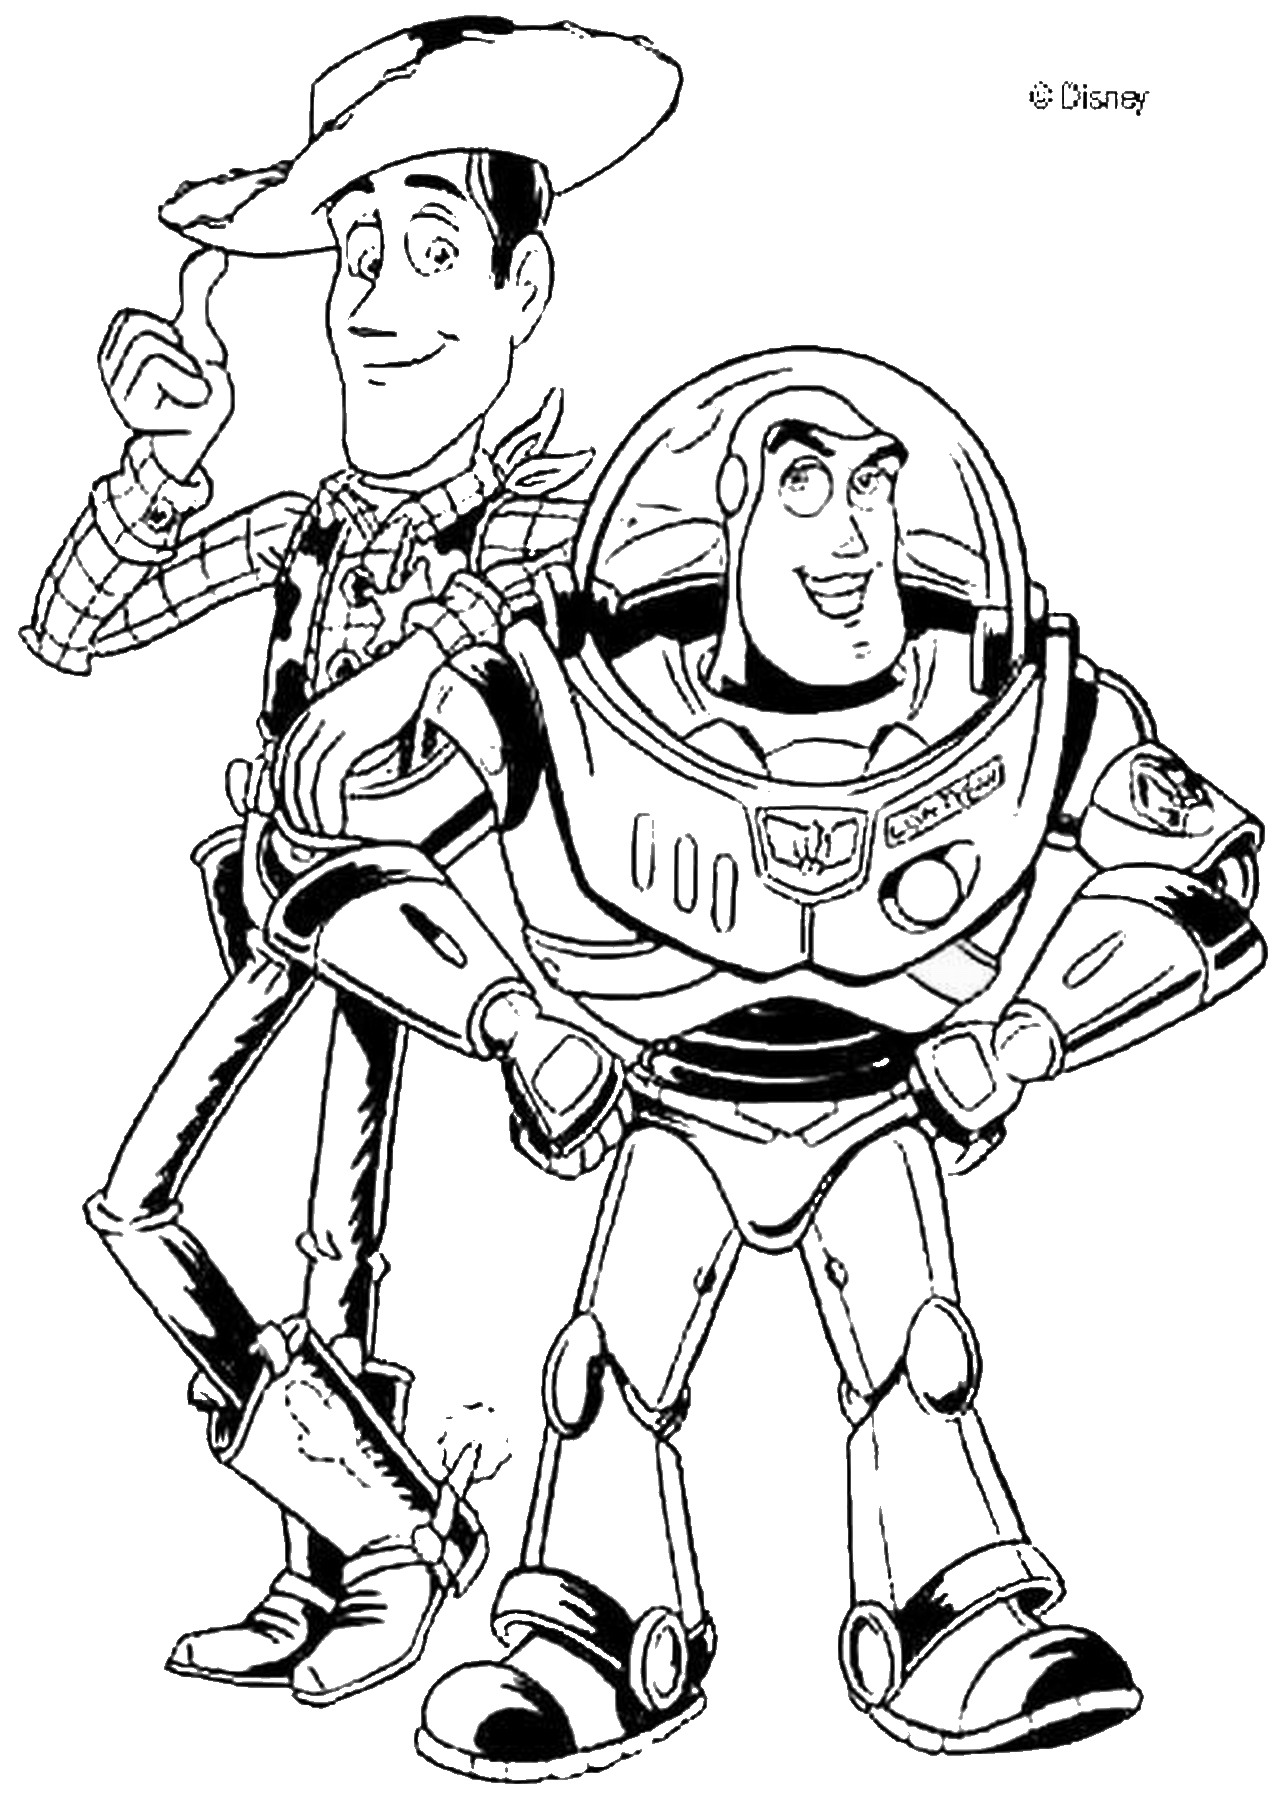 coloring images to print disney coloring pages to download and print for free images print to coloring